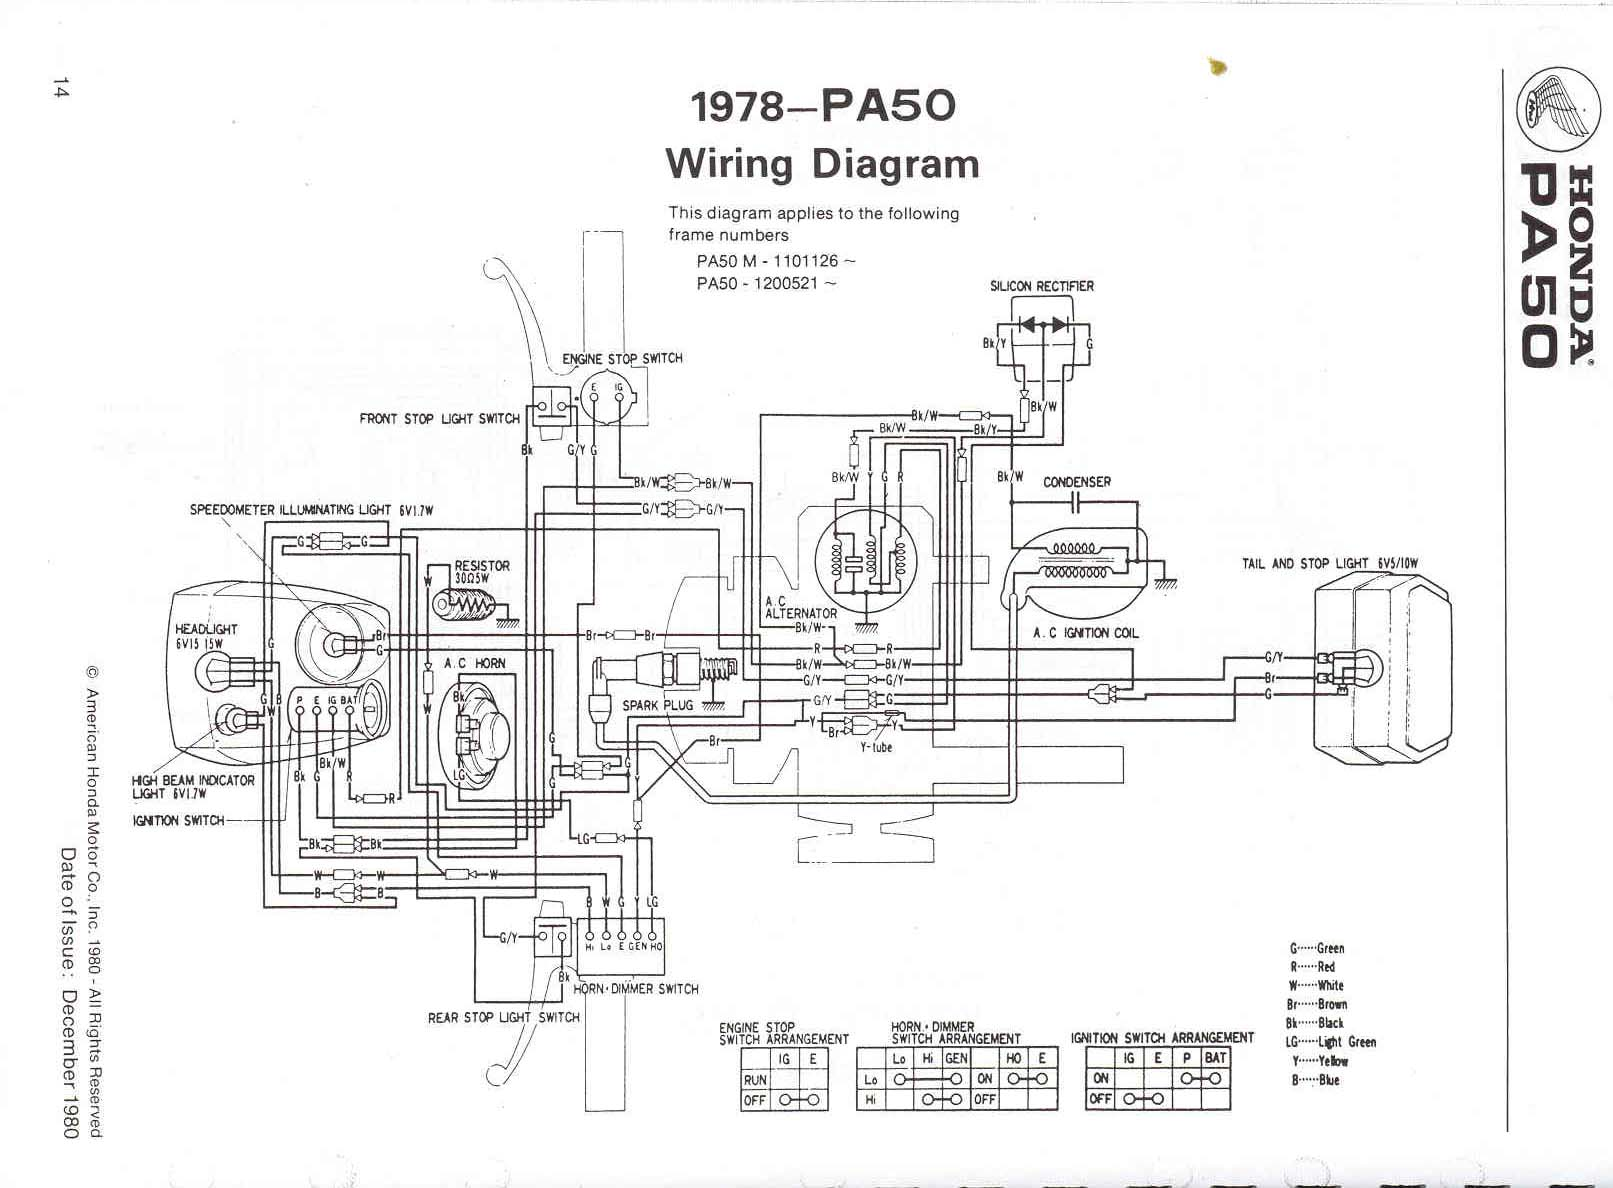 Re  Wiring Diagram 1980 Honda Pa 50  By Mrmacabre   U2014 Moped